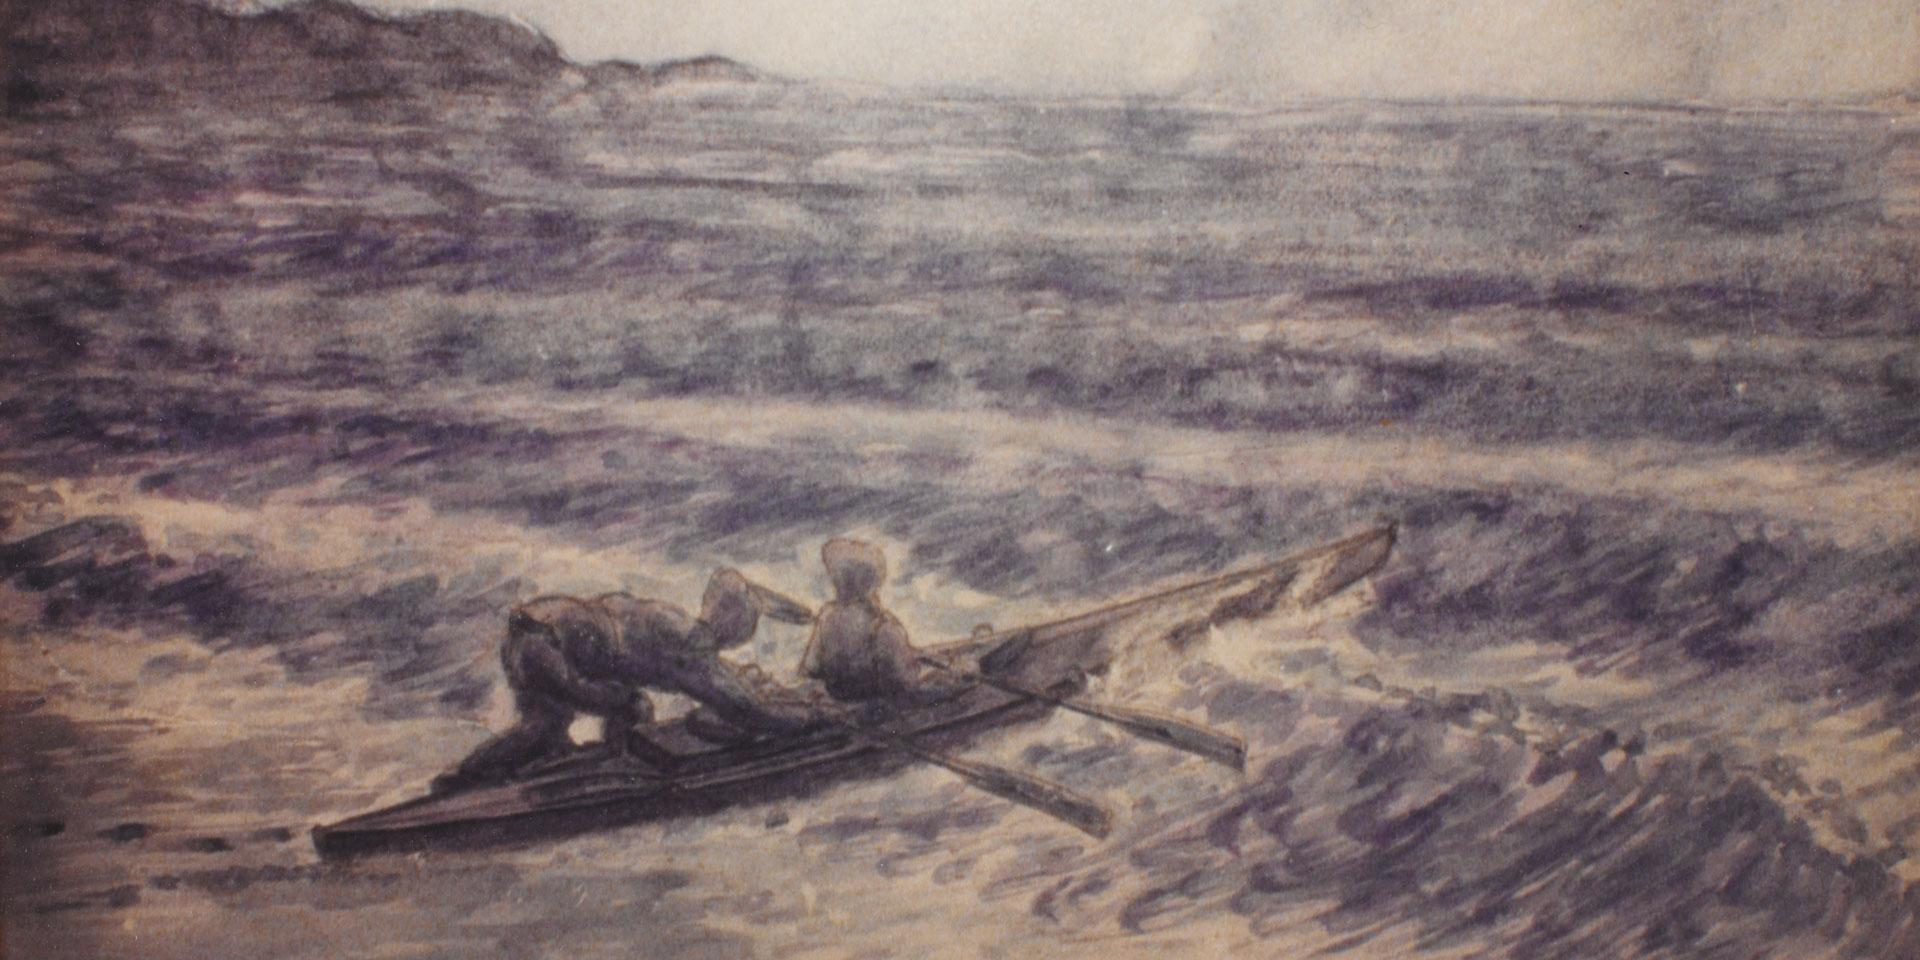 A Special Boat Section canoe during the Anzio beach reconnaissance, 1944